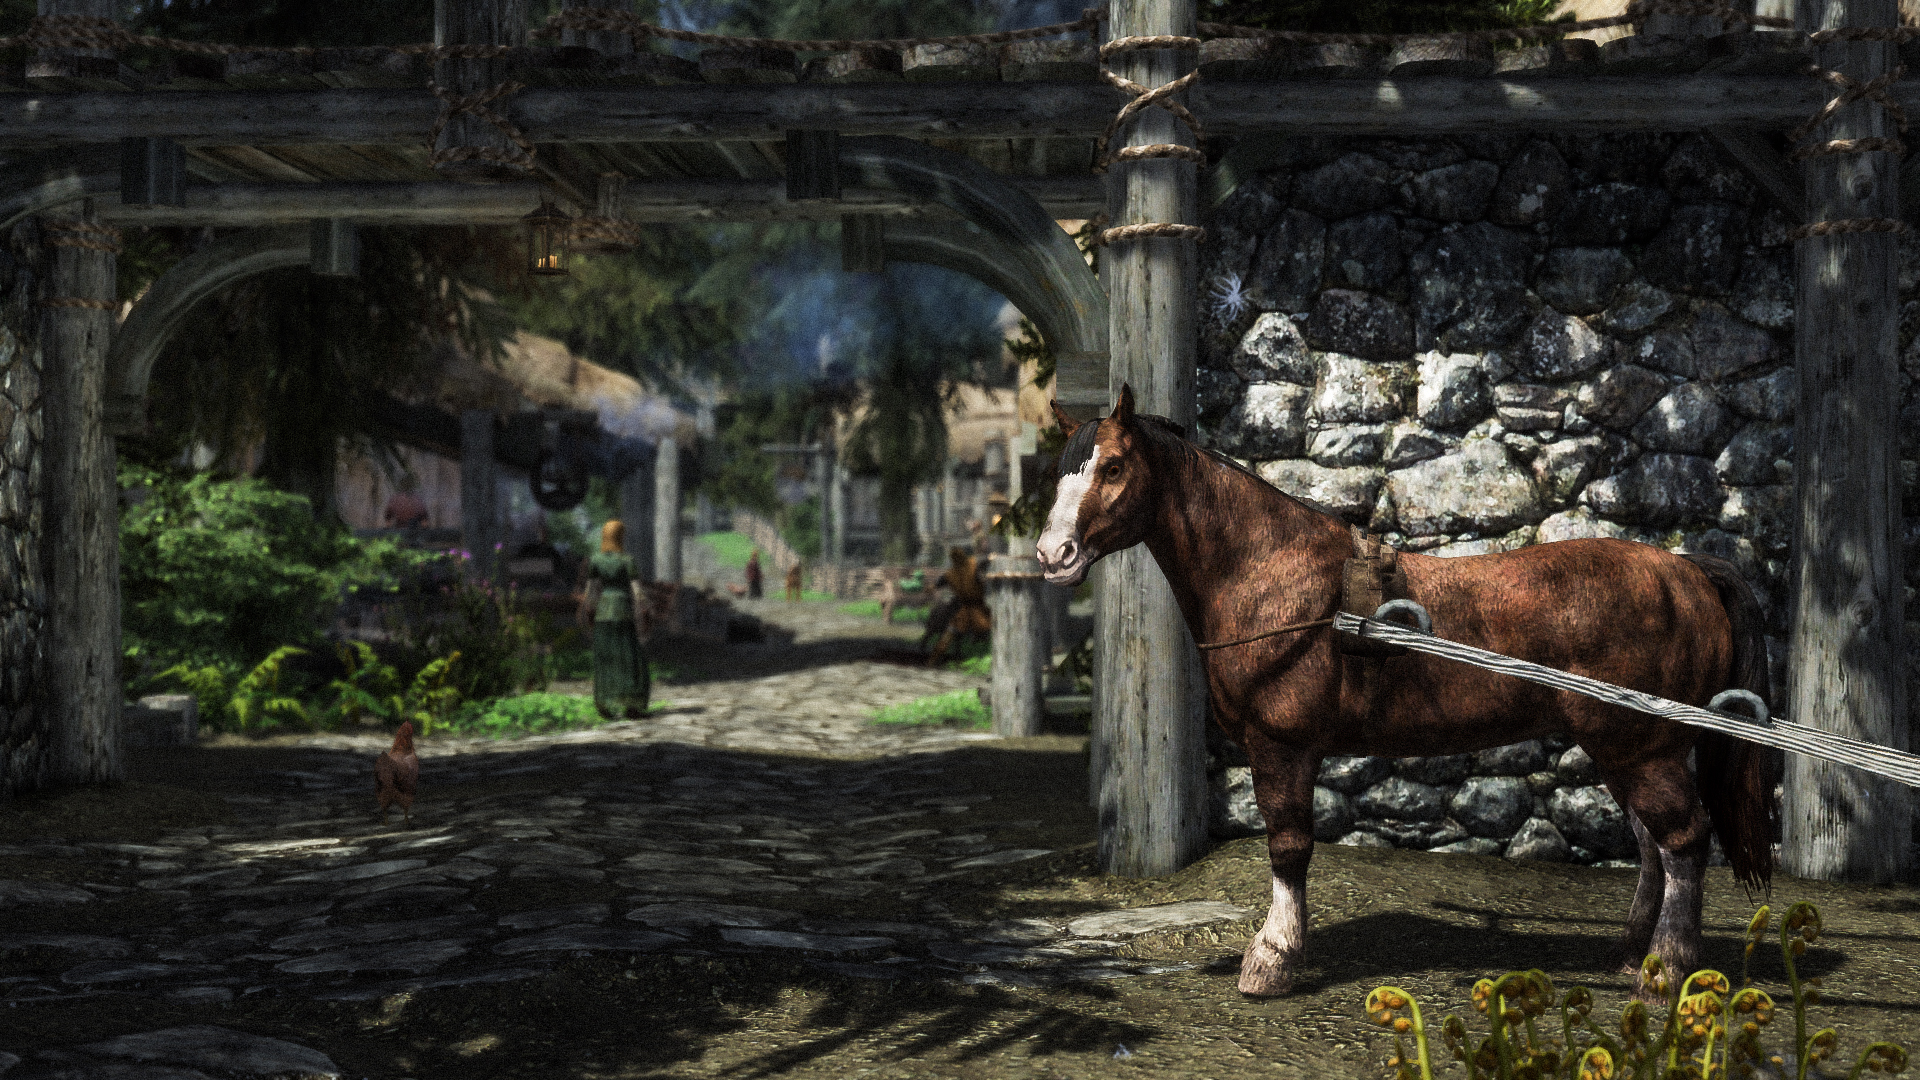 Portraits of Riverwood | 4K Horse Show #2 | Flickr - Photo Sharing!